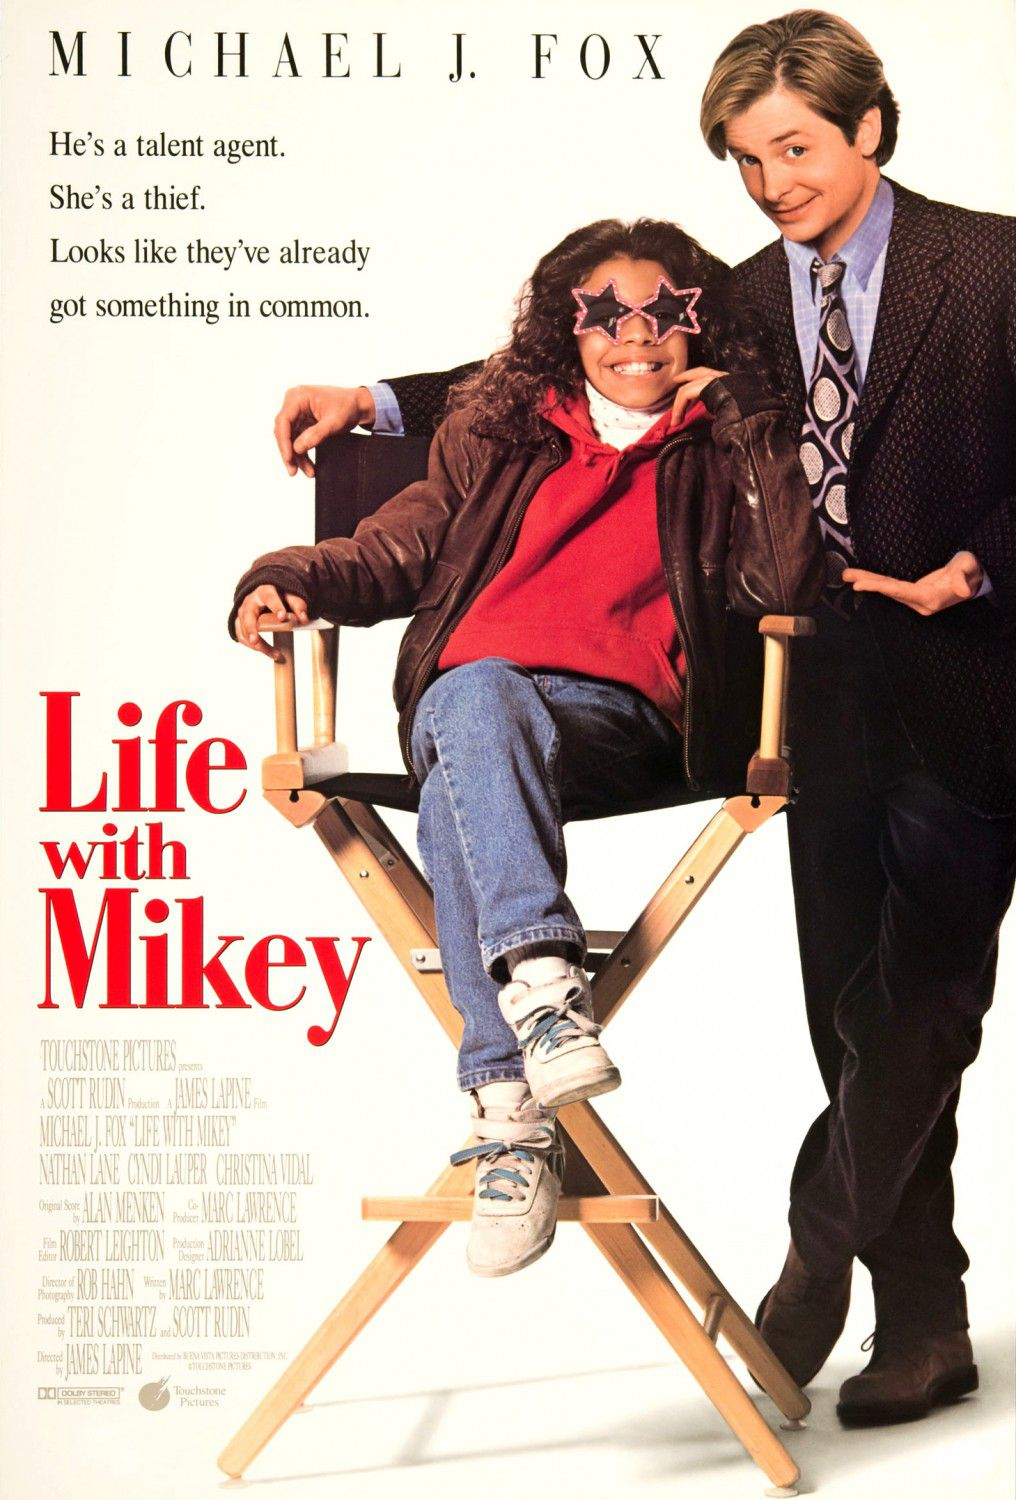 Life with Mikey - Cercasi Superstar